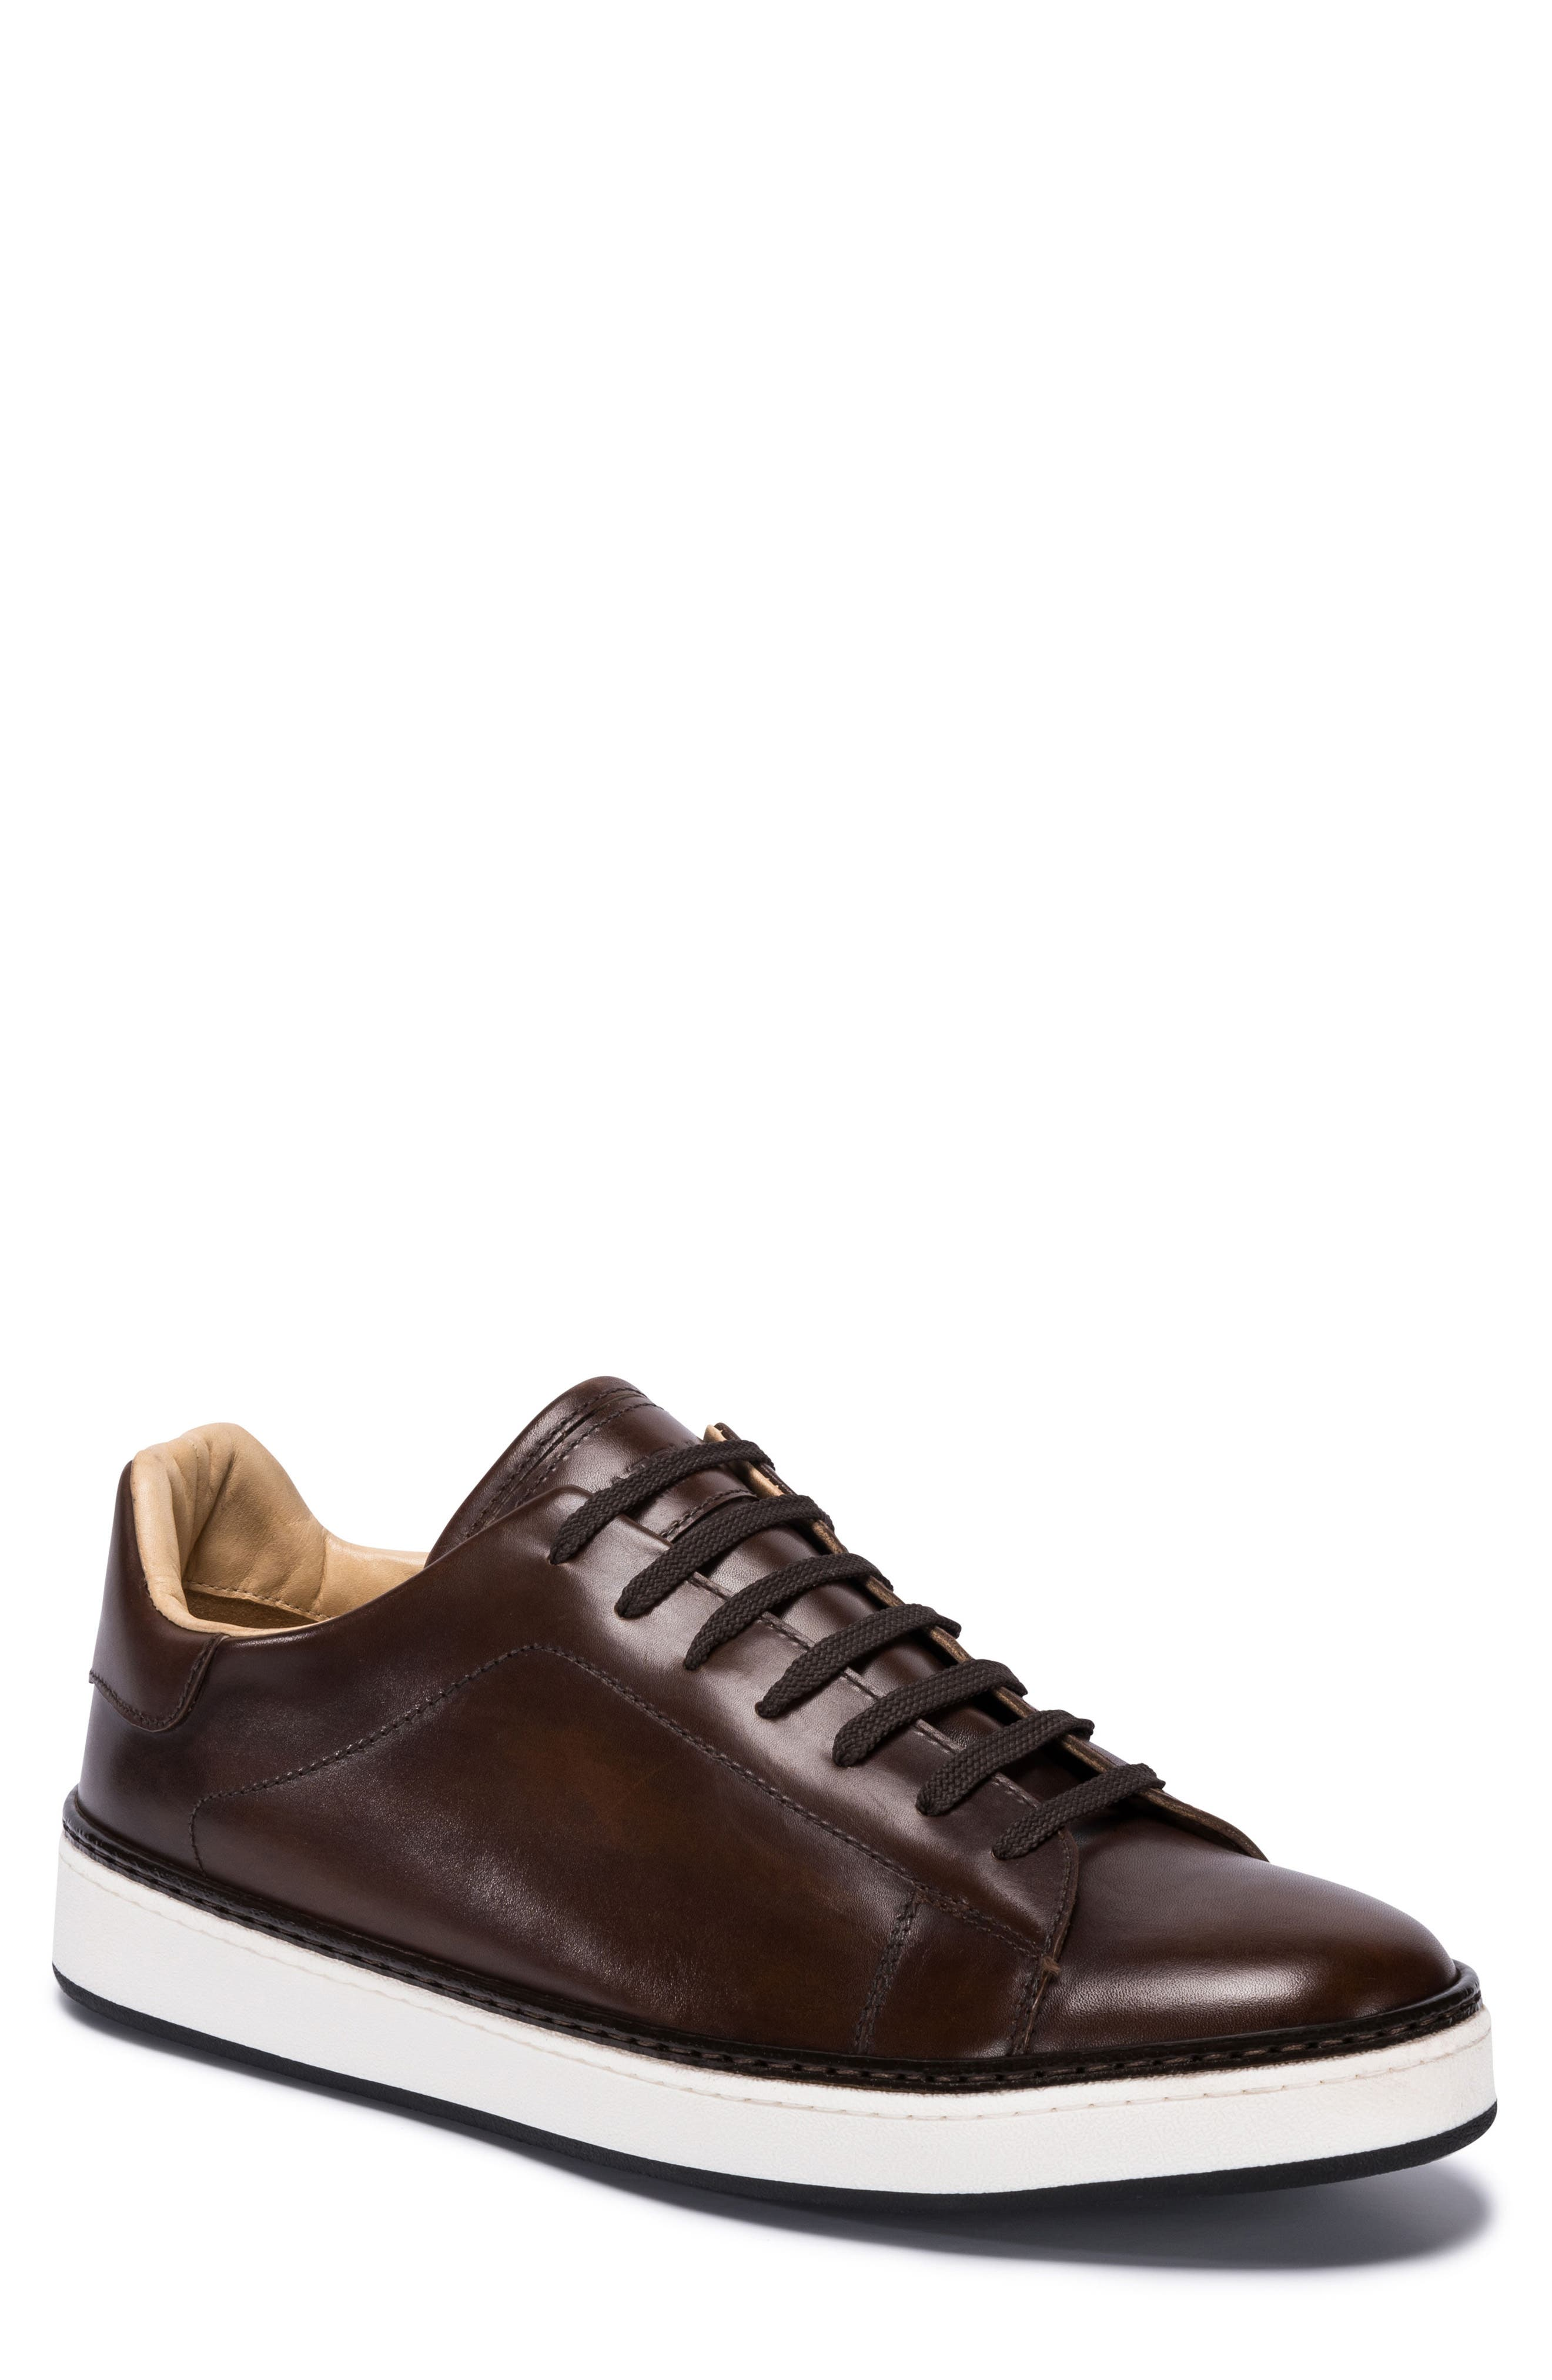 Firenze Low Top Sneaker,                         Main,                         color, BURGUNDY LEATHER